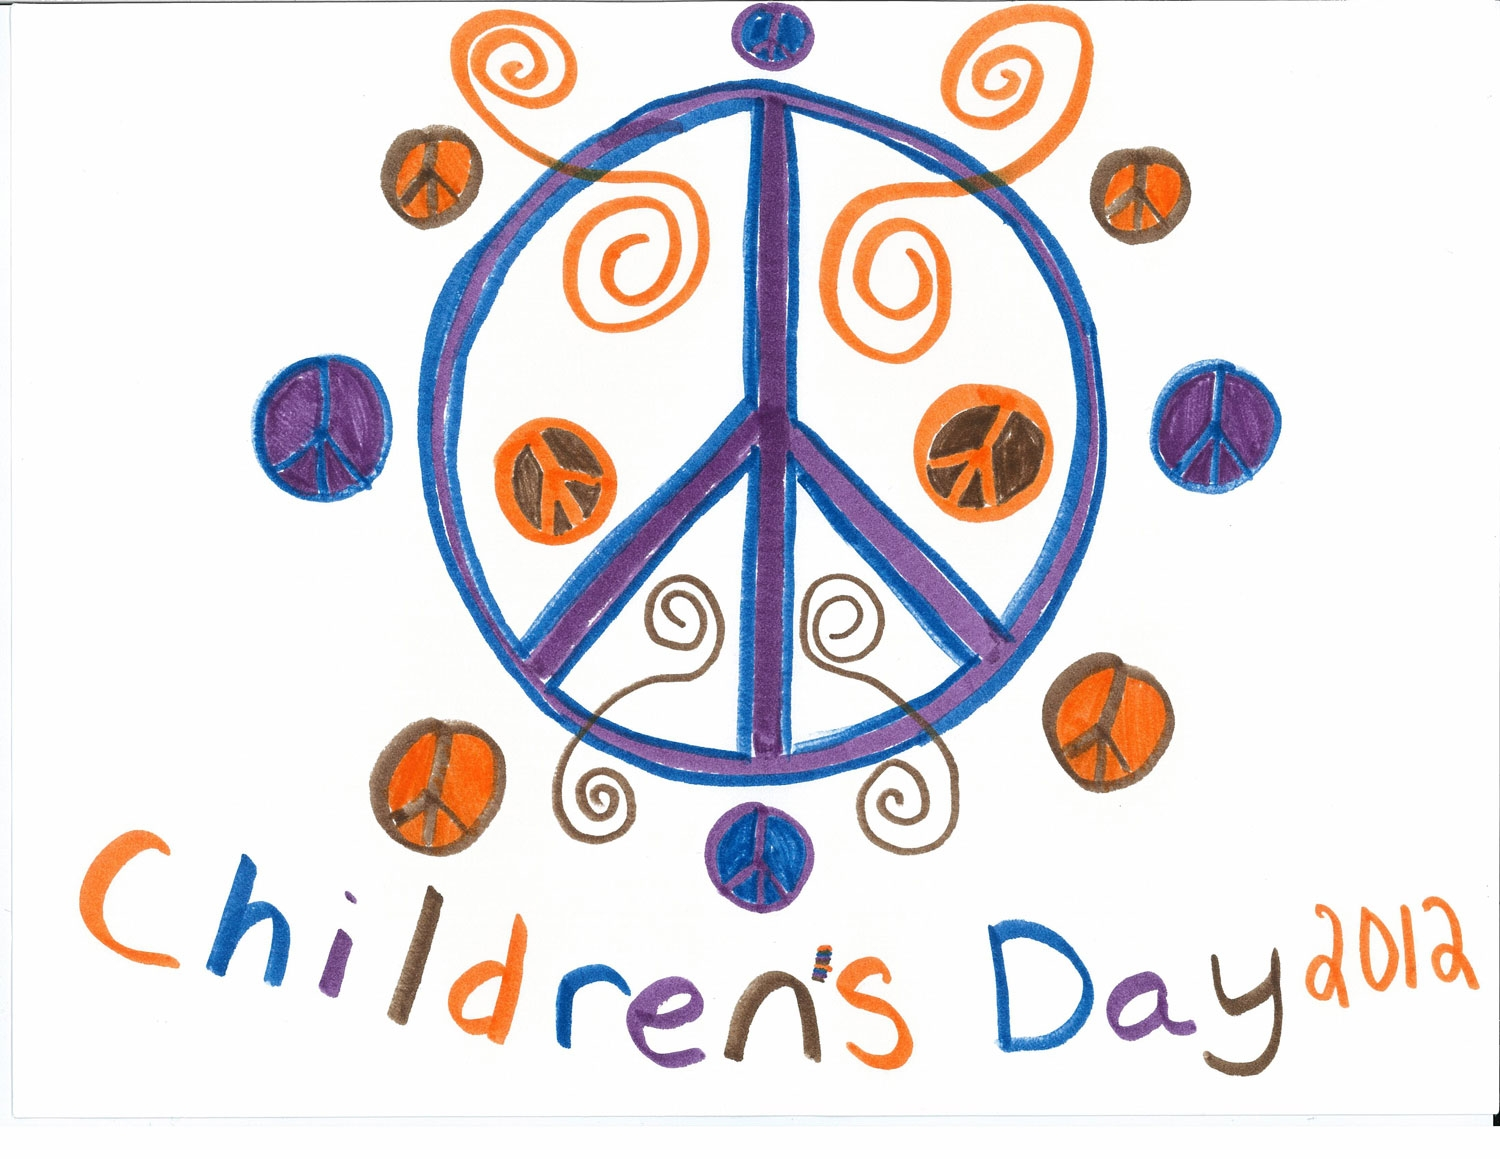 Picturespool Childrens Day Wallpapers Childrens Day Greetings